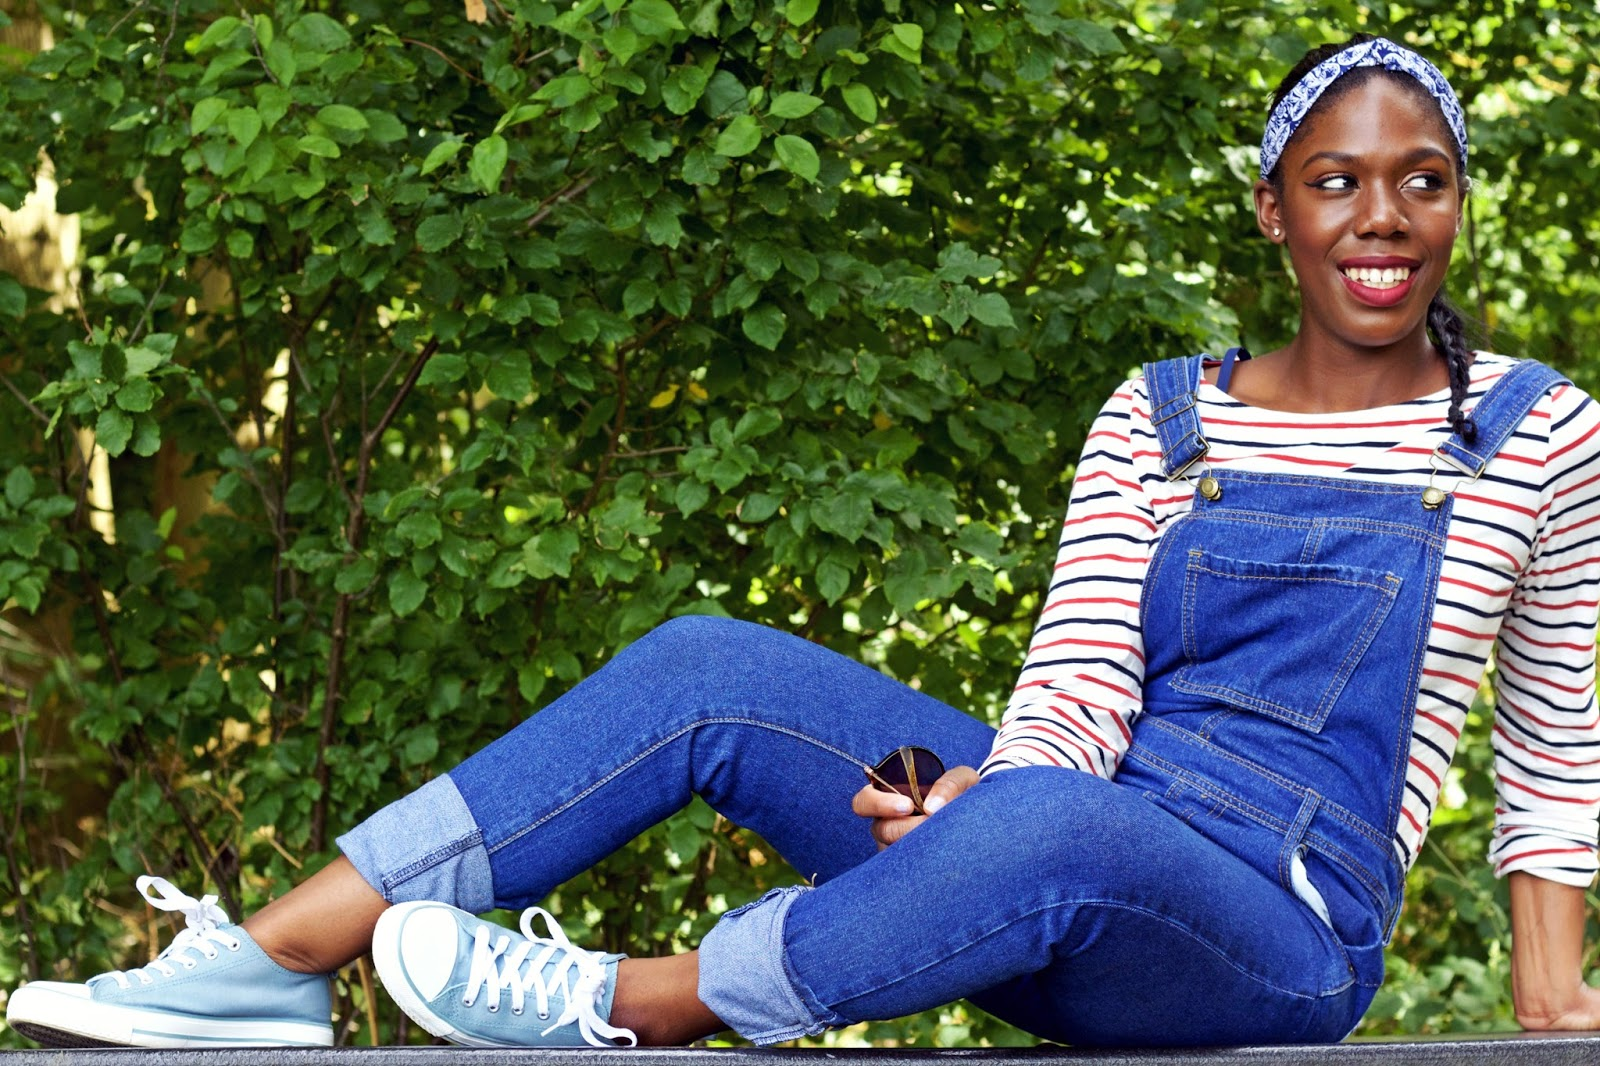 breton top, styling the breton top, boohoo dungarees,dungarees, summer style, boden clothing, nautical style, 100 ways to 30 blog, uk fashion blog, uk style, fashion and fun